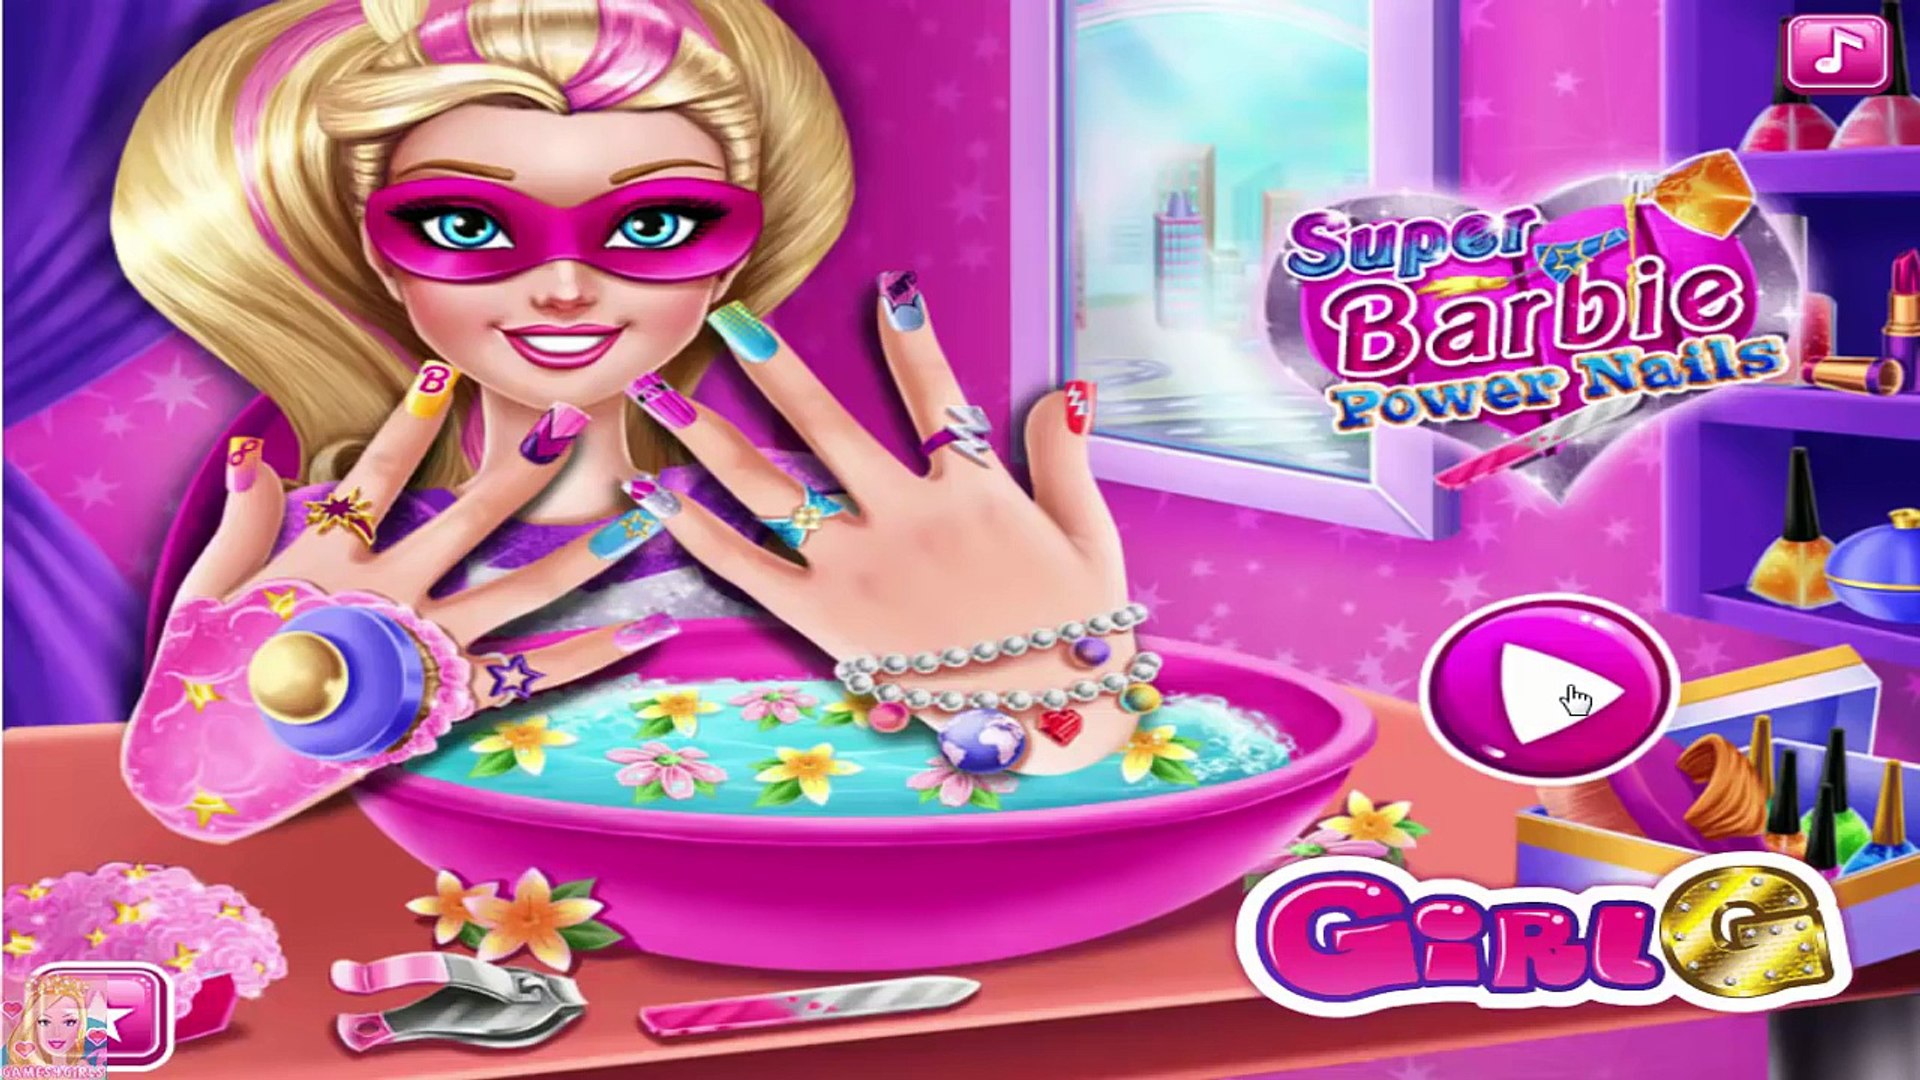 Disney Princess Barbie: Super Barbie Power Nails - Barbie MakeOver